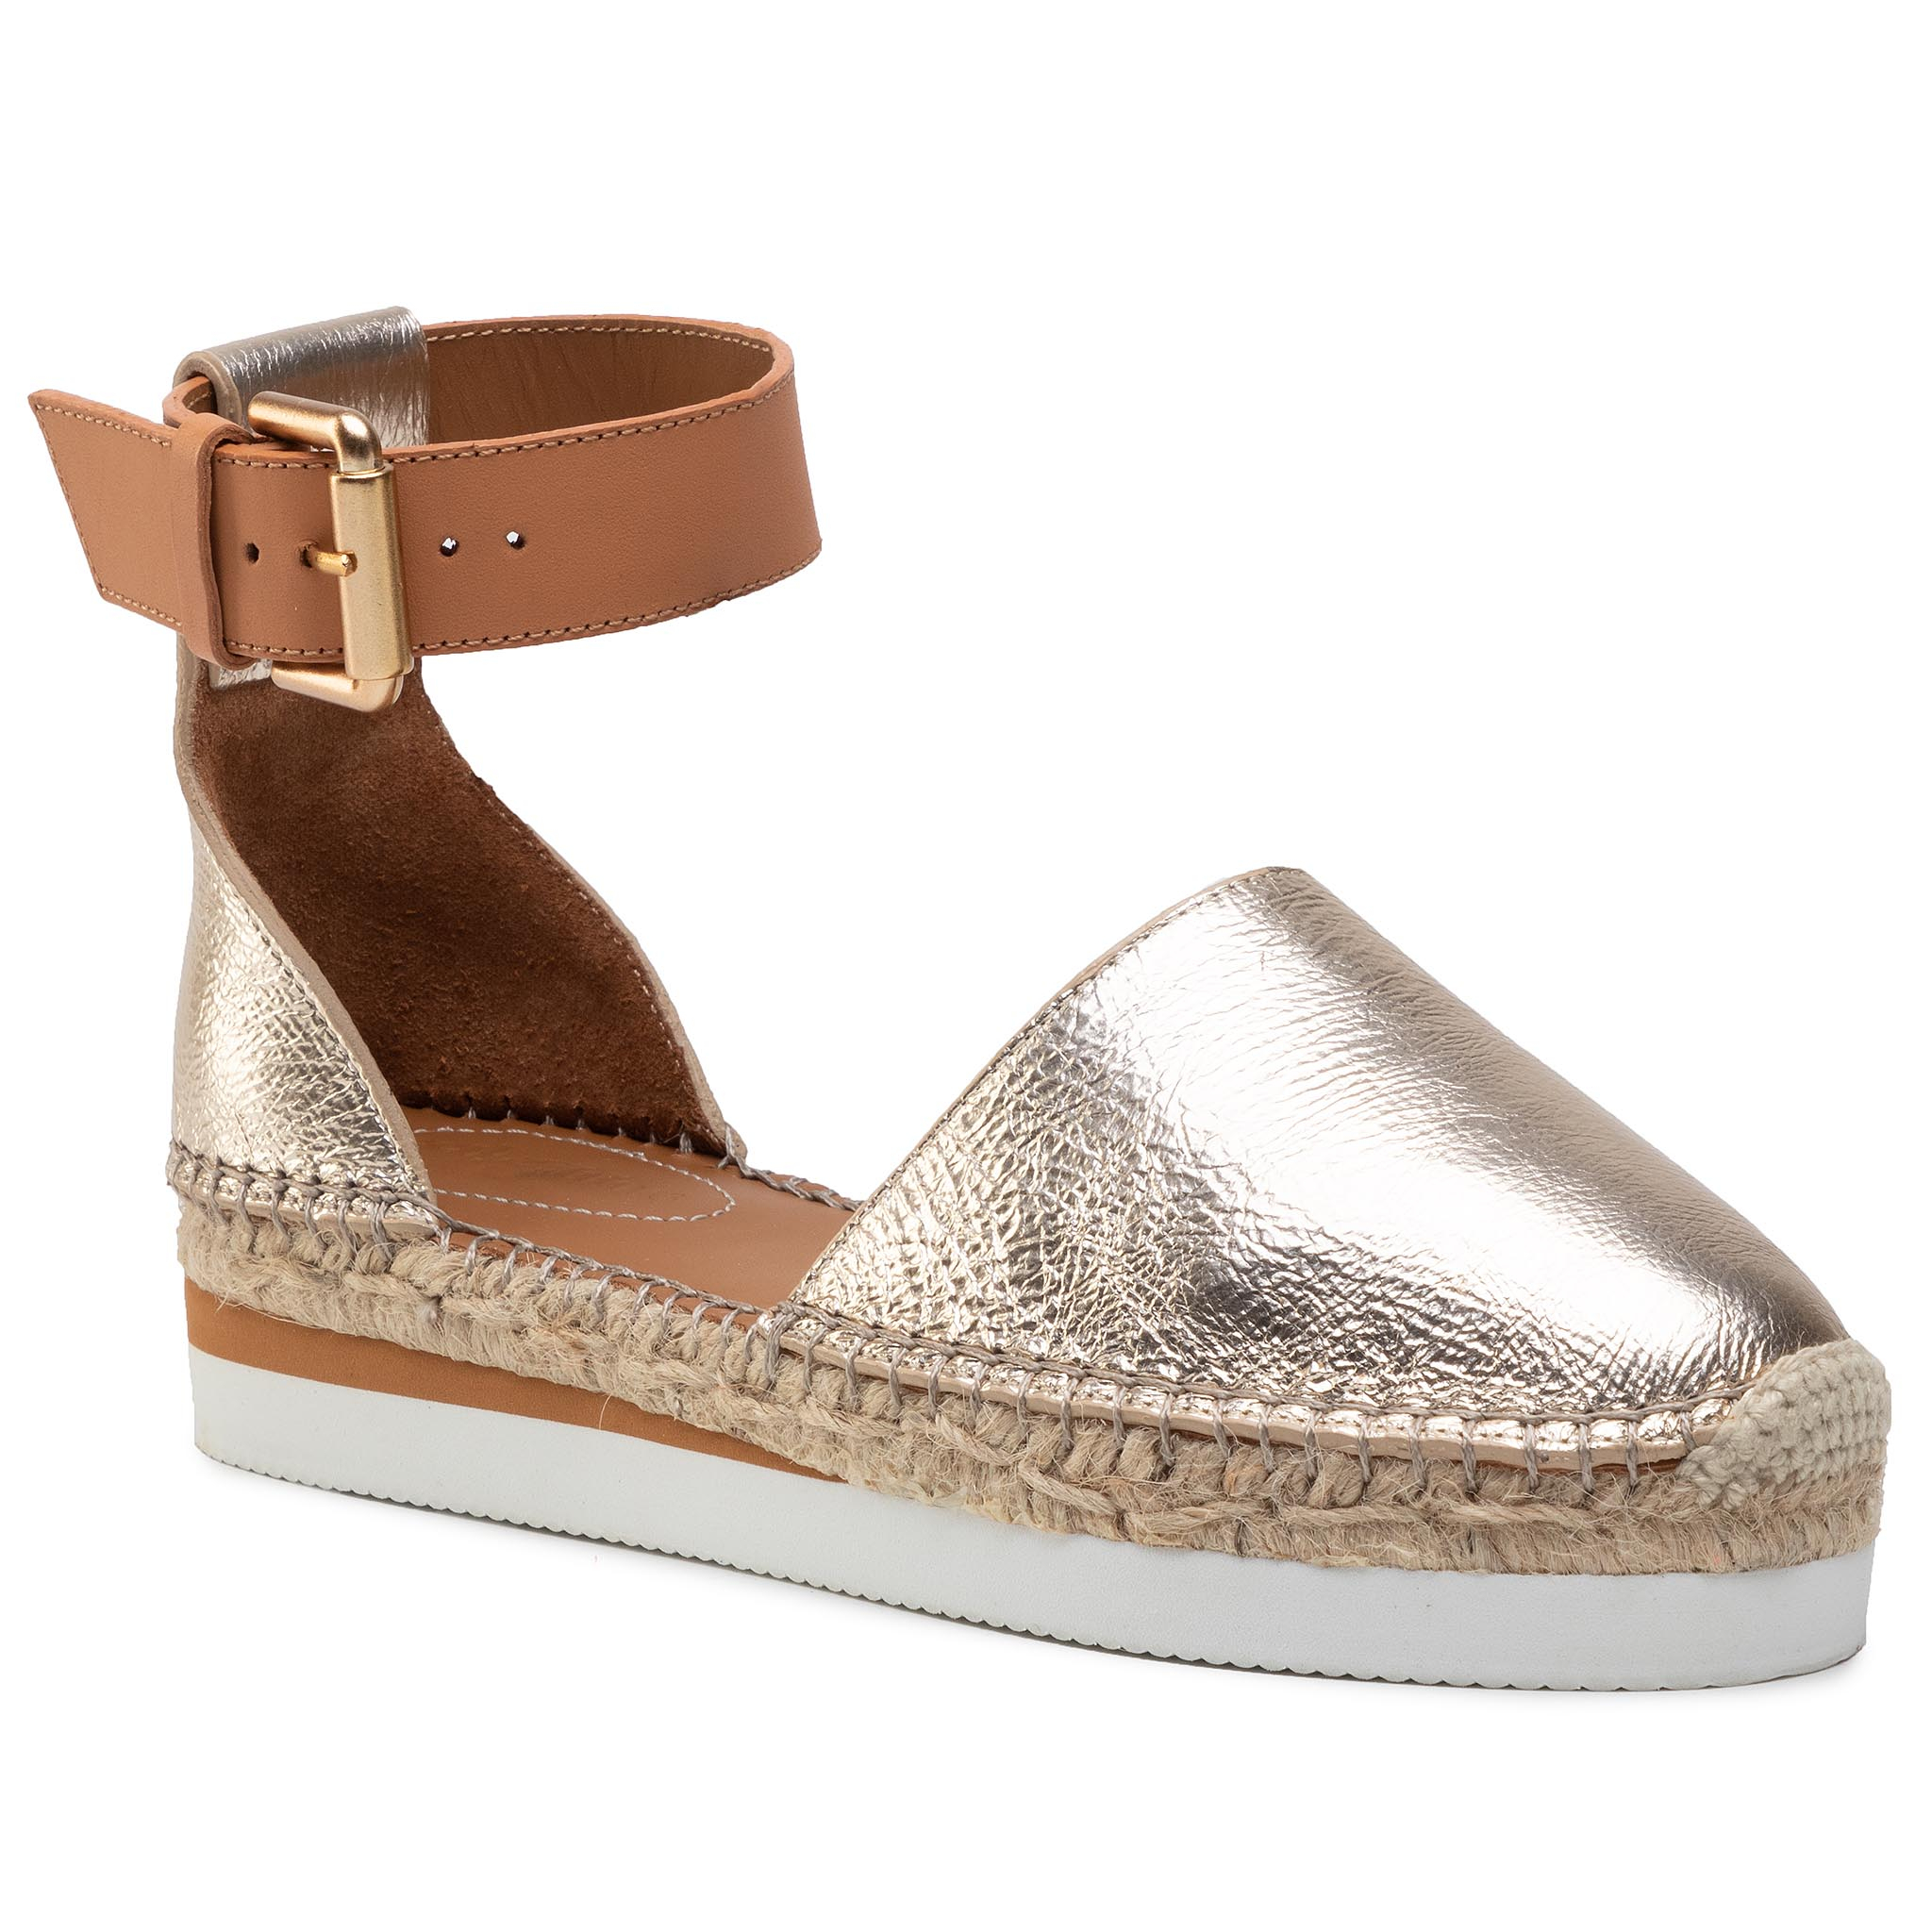 Image of Espadrillas SEE BY CHLOÉ - SB26150 Gold 533